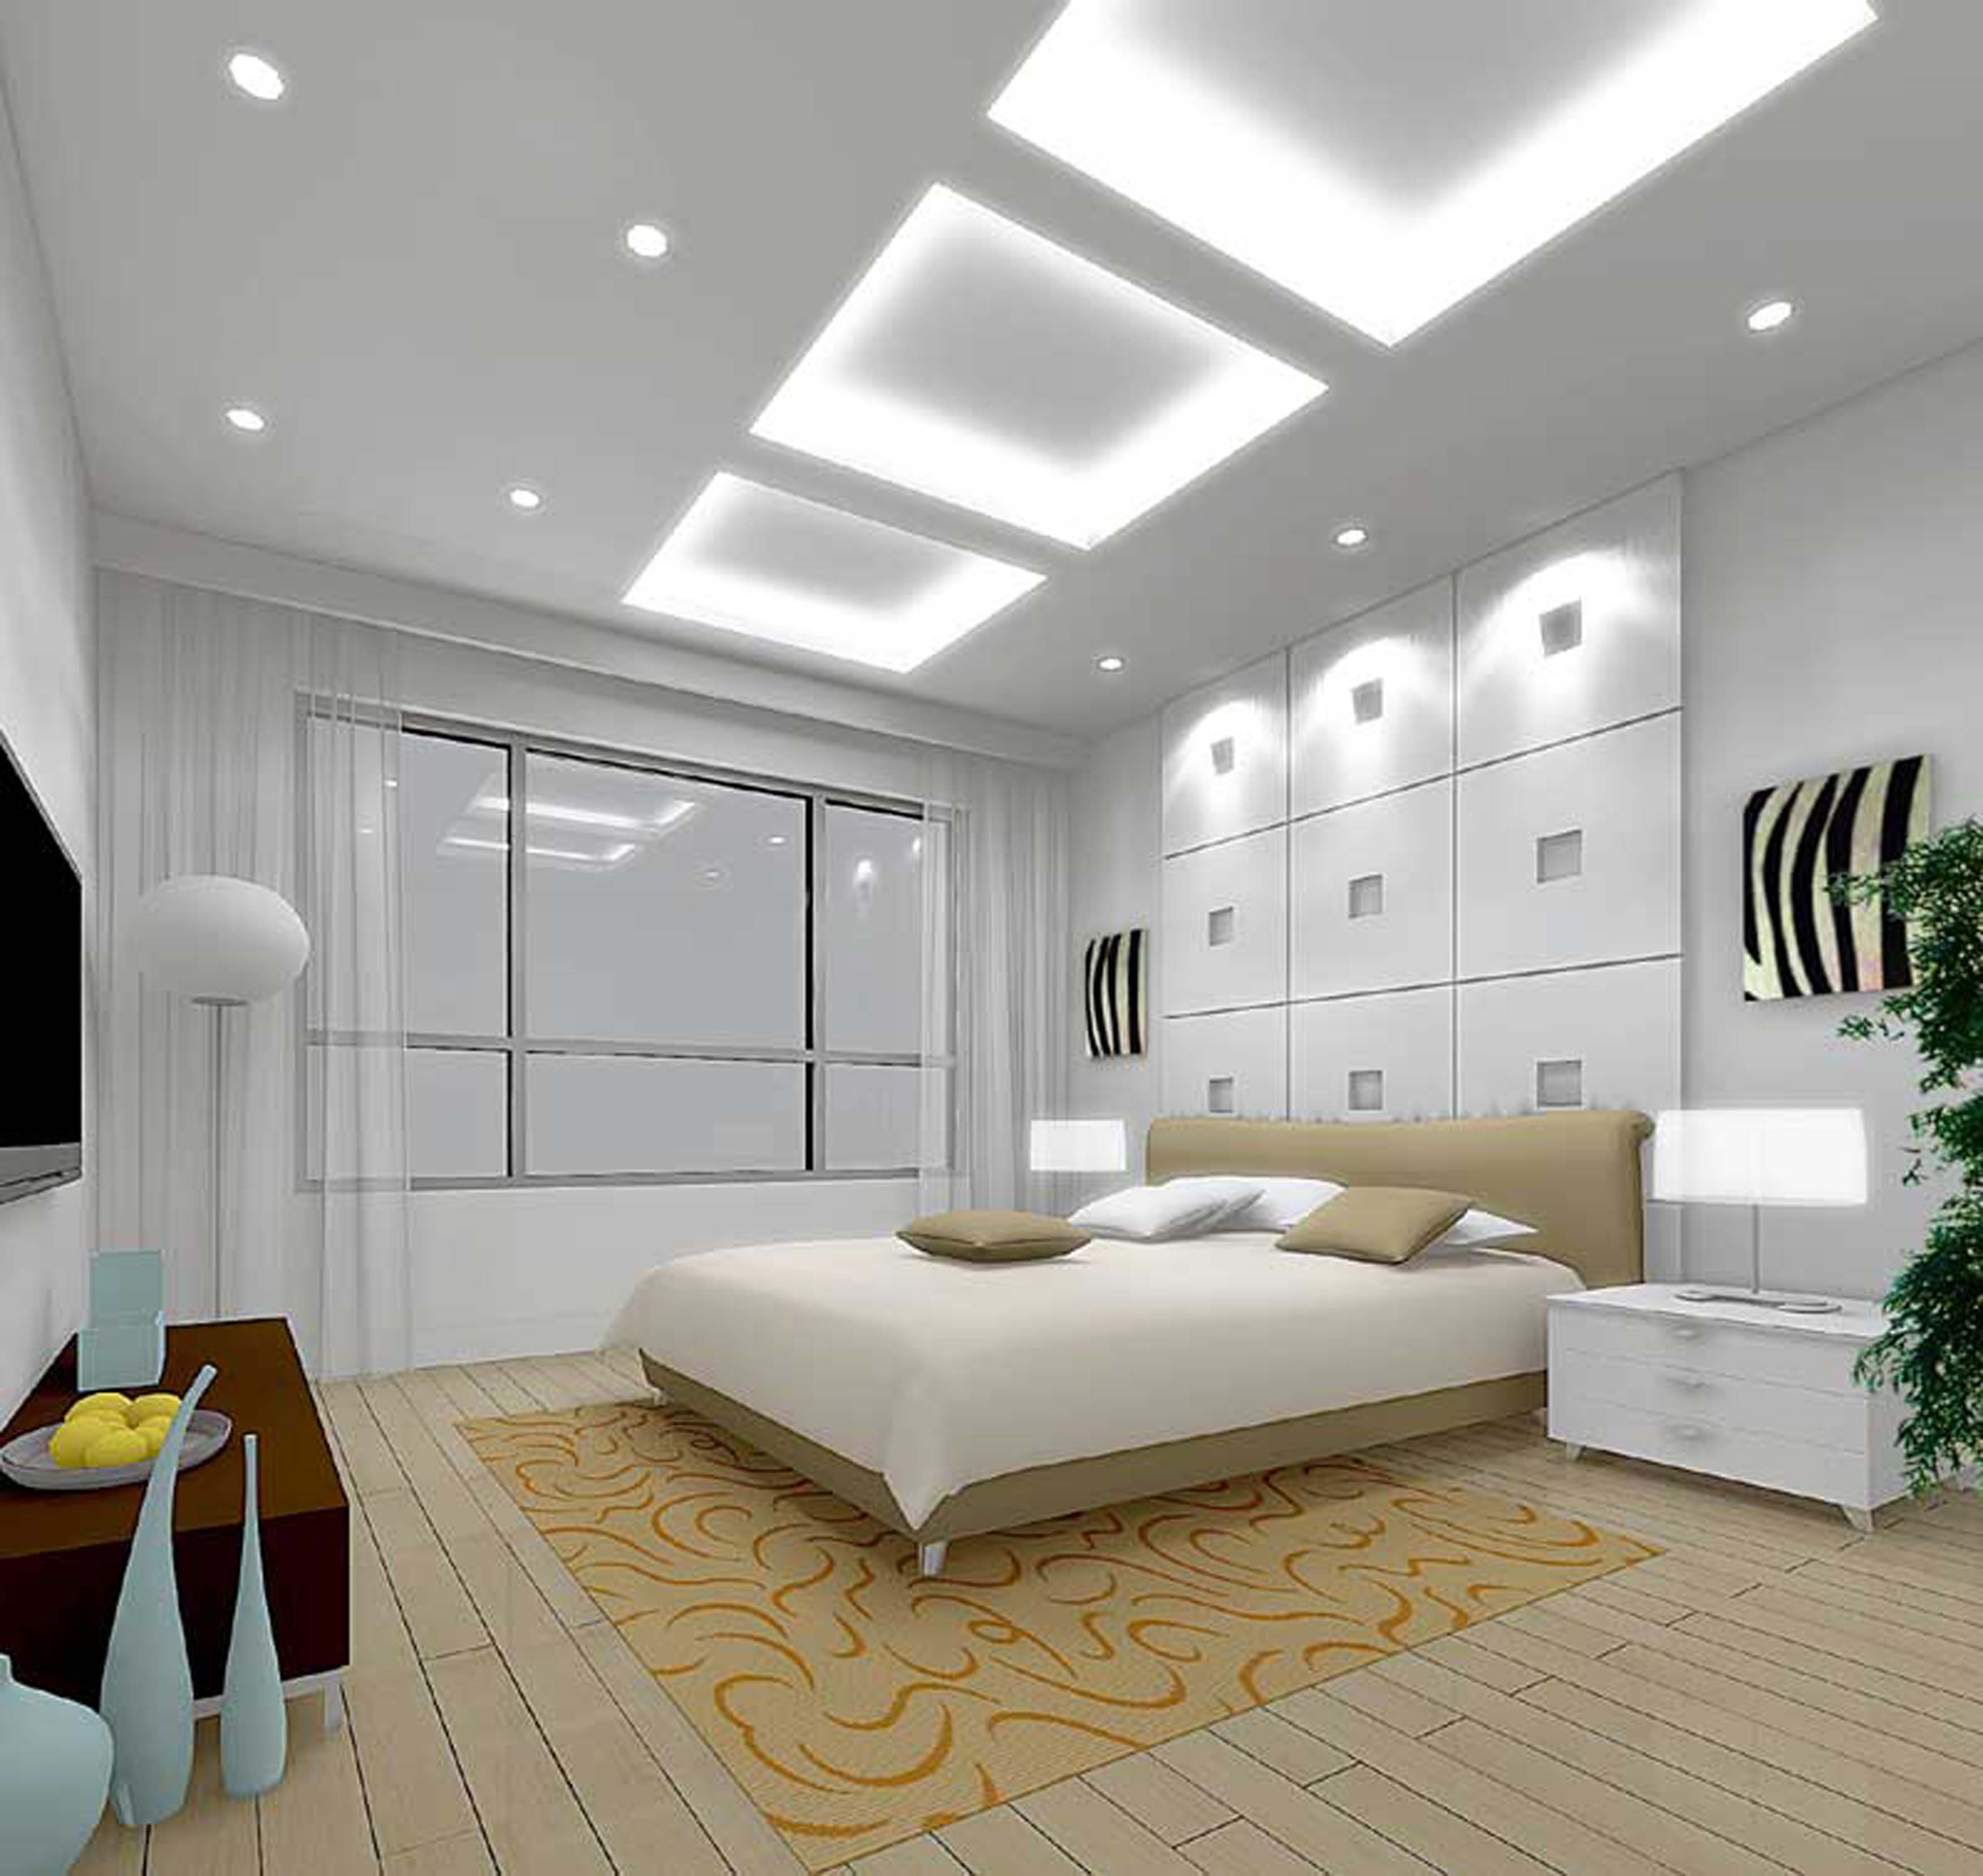 Modern Master Bedroom Design Ideas, Ideas May Be Hard To Find, And If Found  They Would Be Hard To Combine Together To Give A Conjugant Thought.